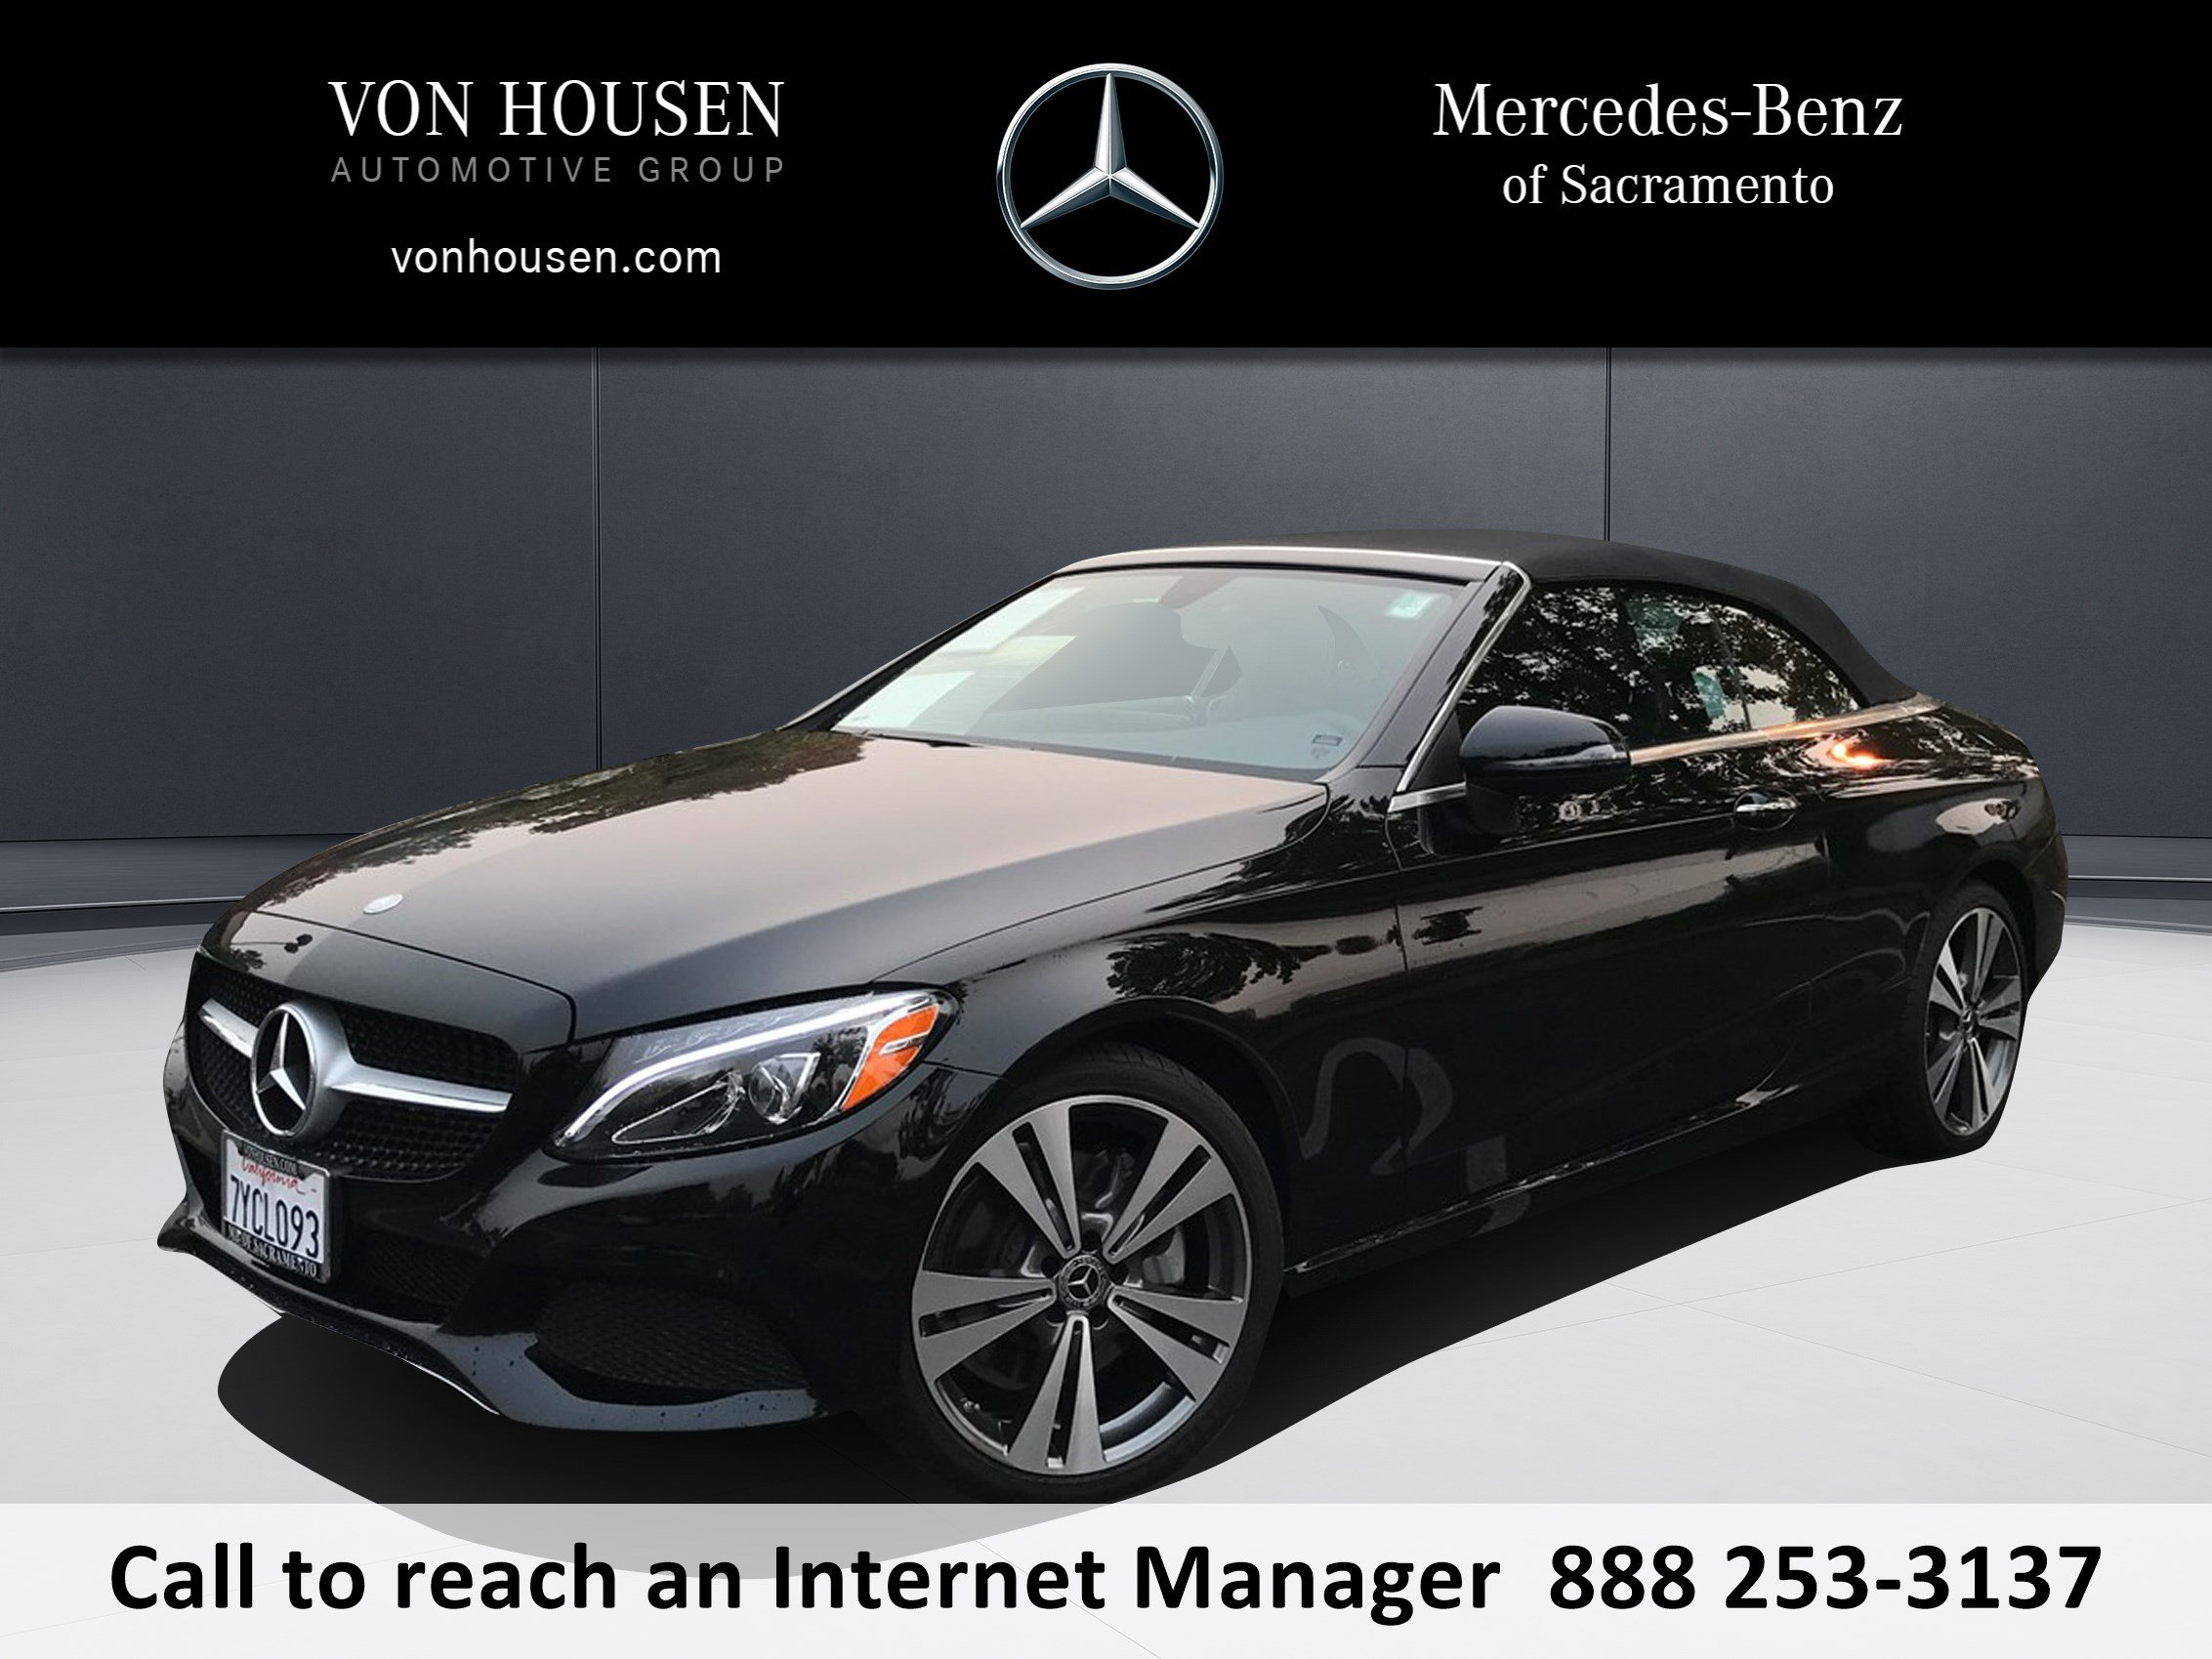 Certified Pre Owned 2017 Mercedes Benz C Class C 300 CABRIOLET in